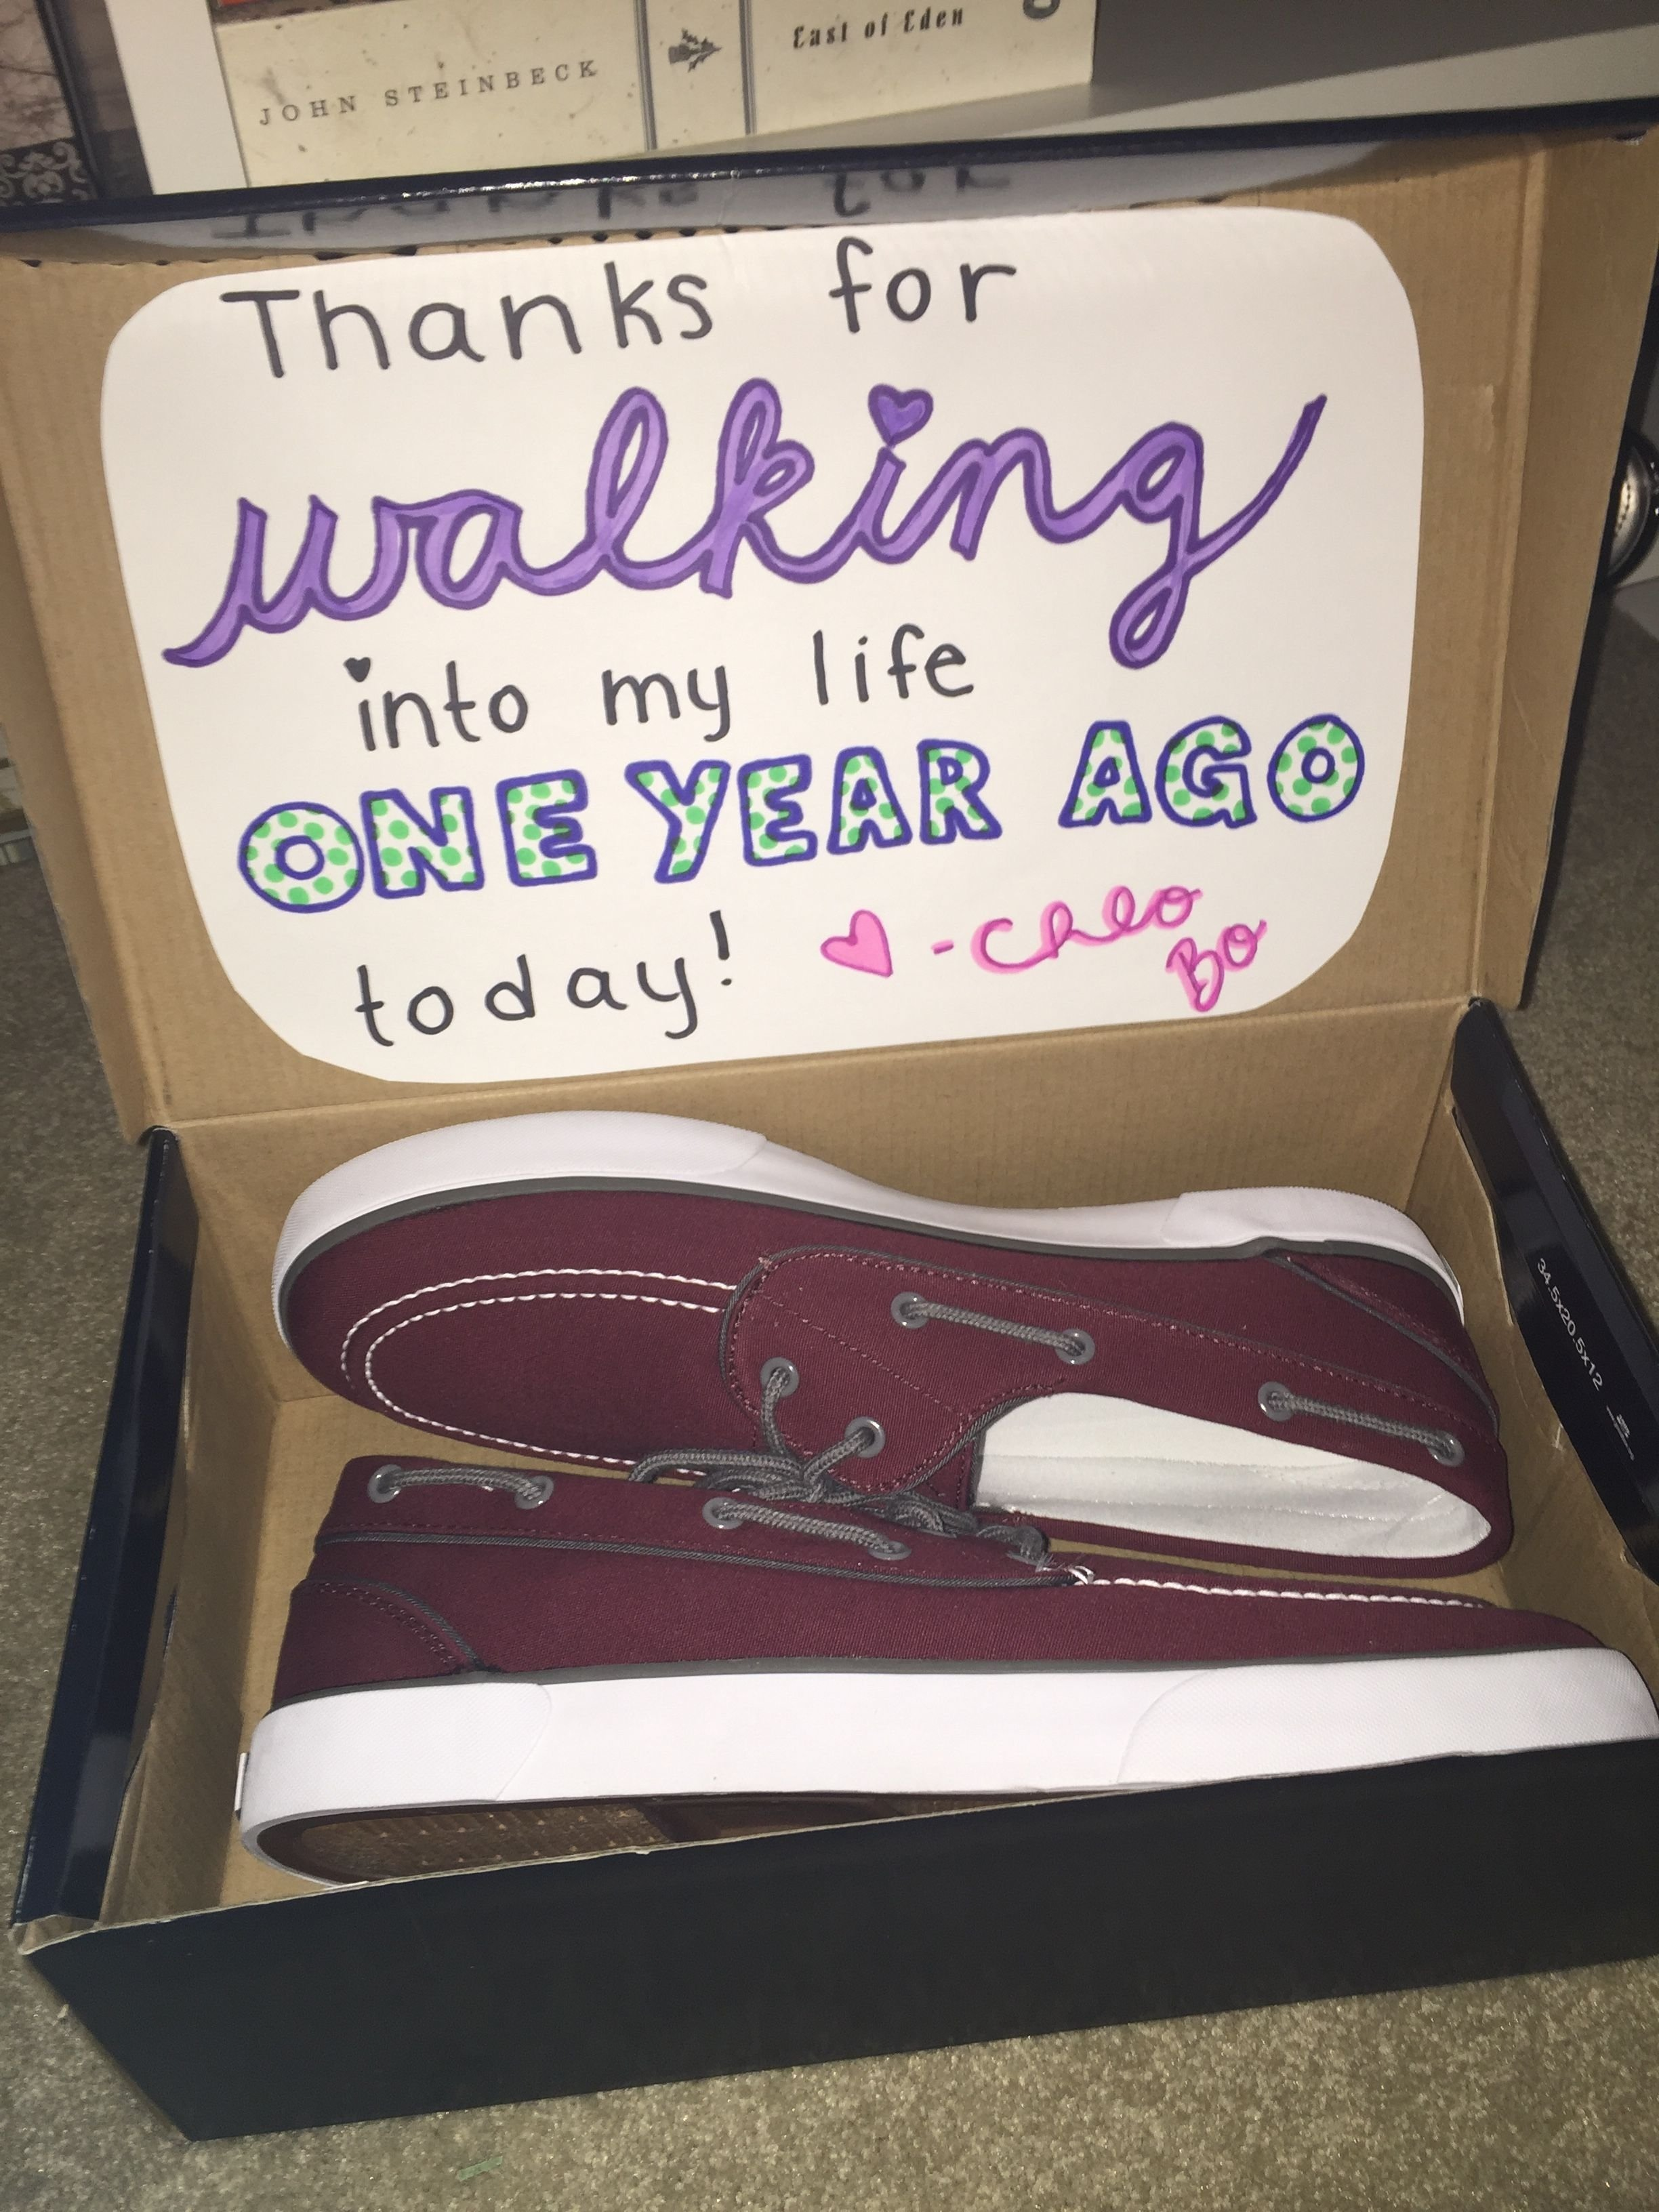 10 Great Cute One Year Anniversary Ideas diy boyfriend gift my boyfriend and i are coming up on our one 13 2021